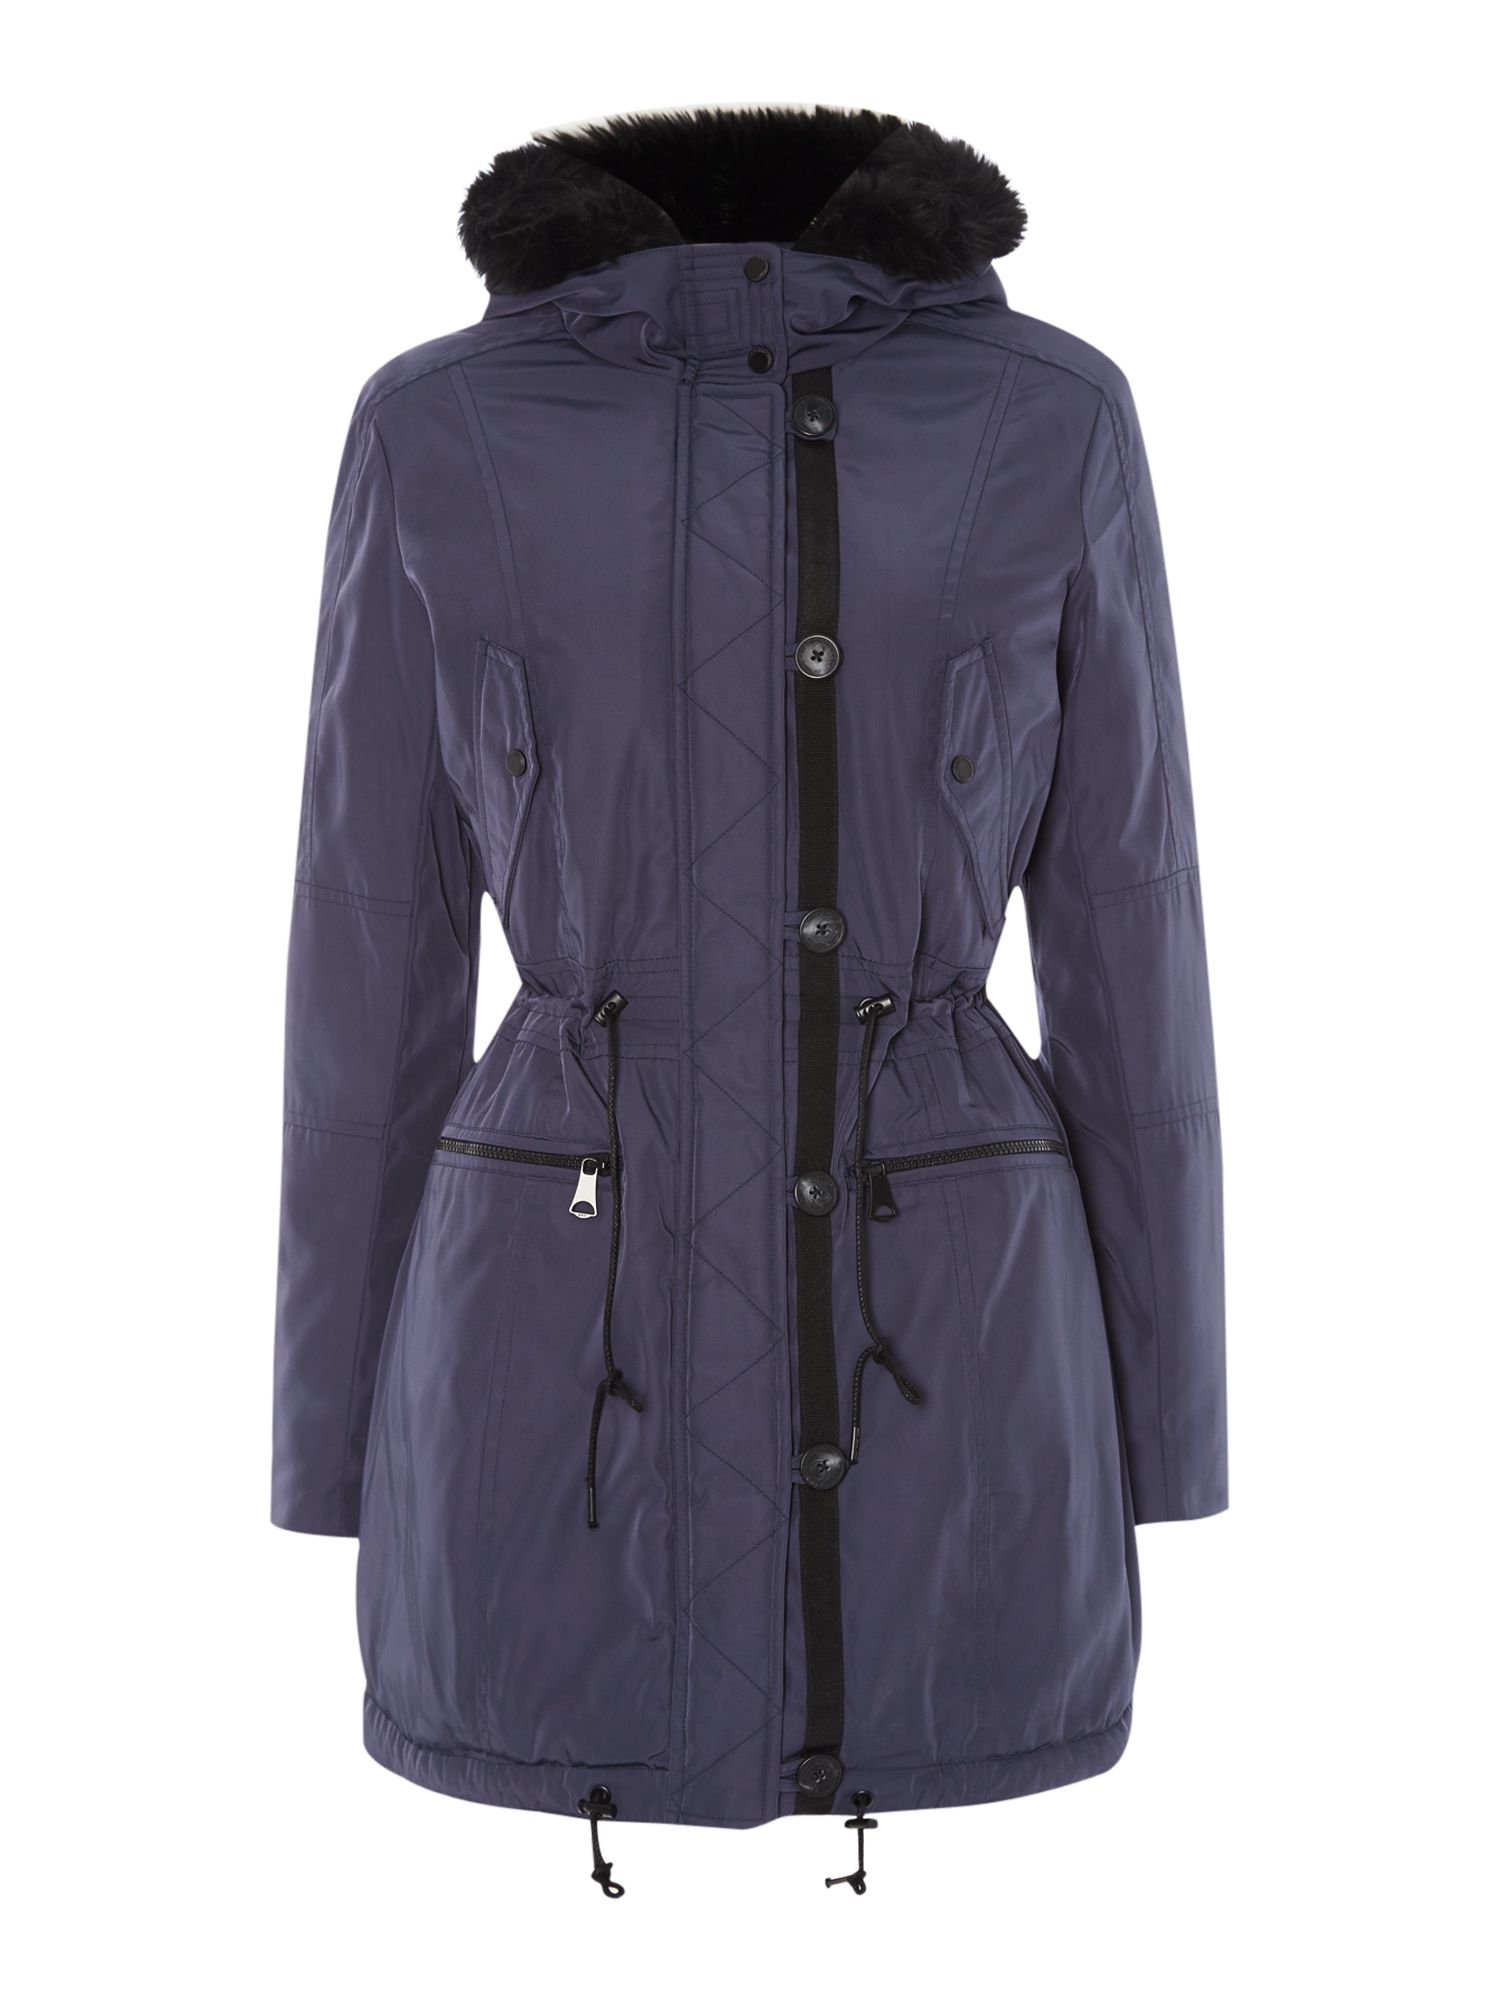 Andrew Marc Parka Style Coat With Faux Fur Lining, Navy